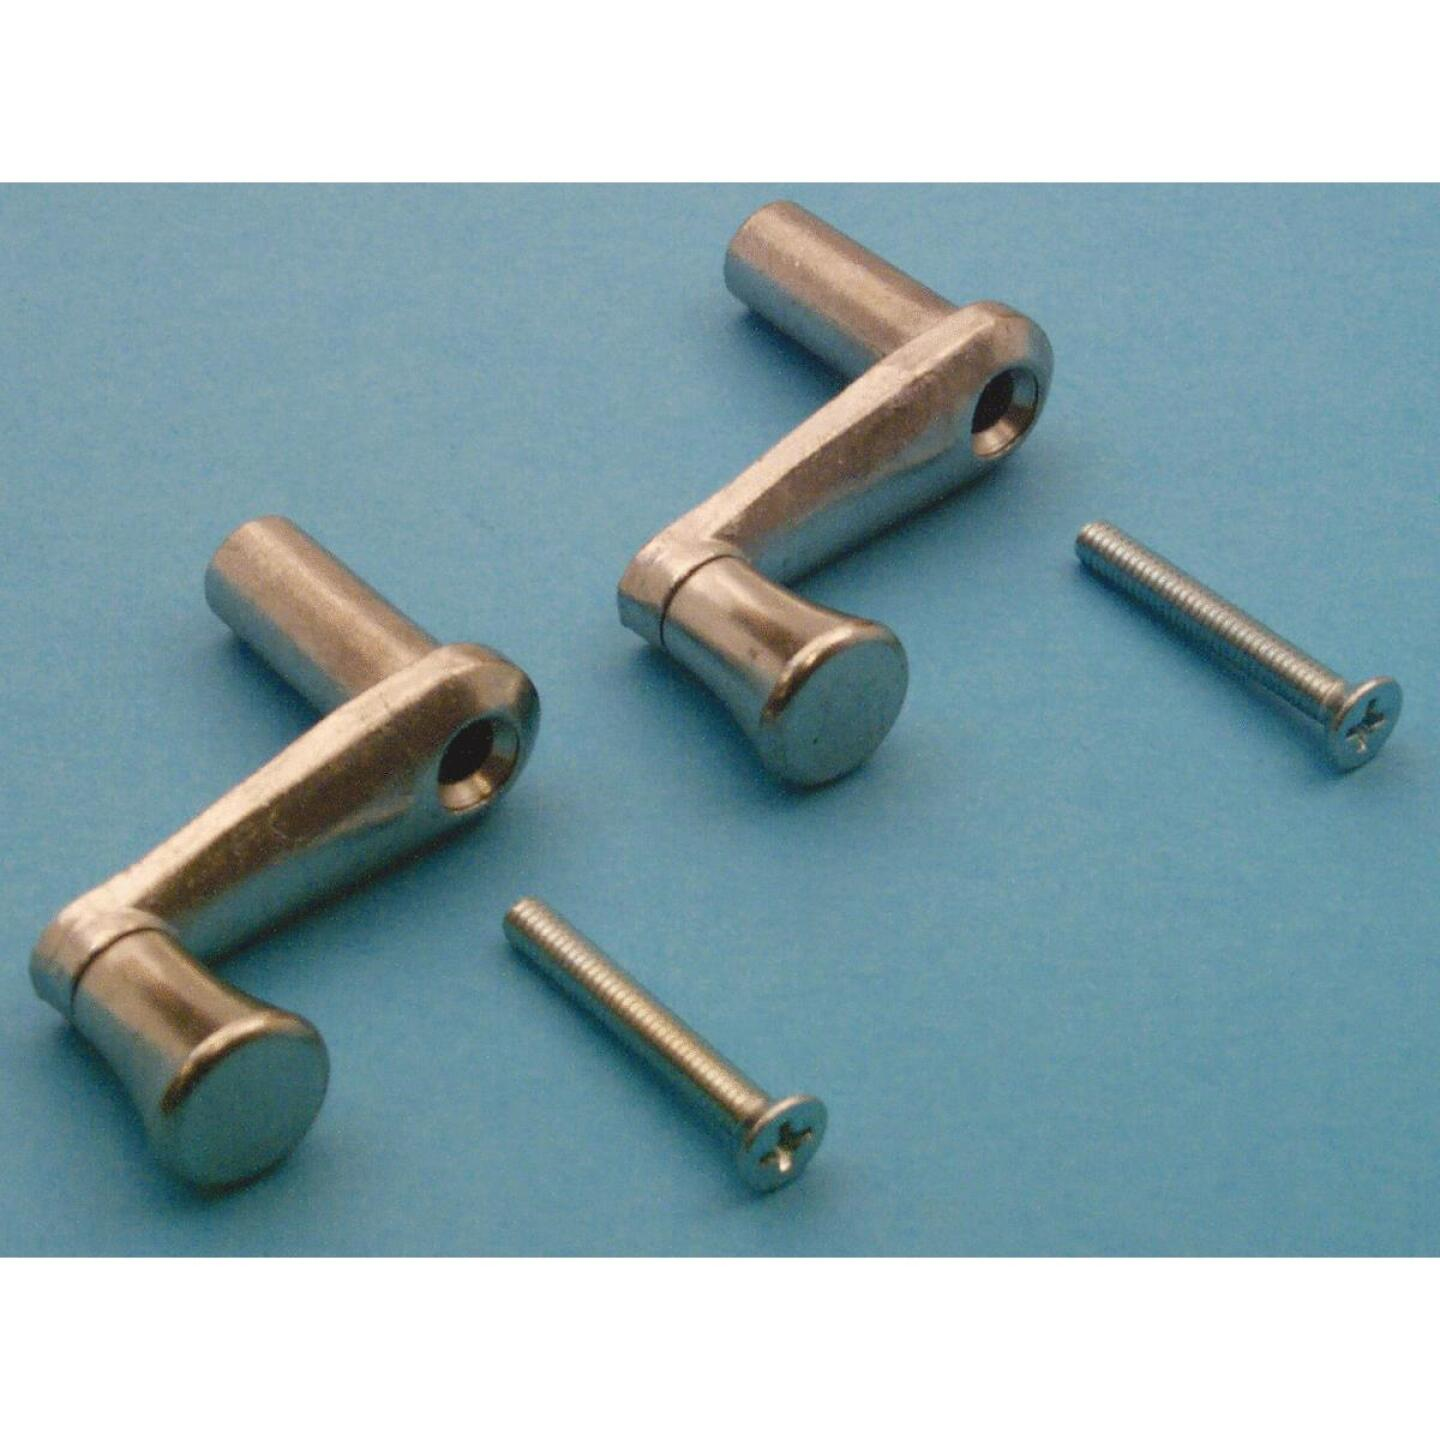 Slide-Co 1 In. Aluminum Casement Window Crank Handle Image 2